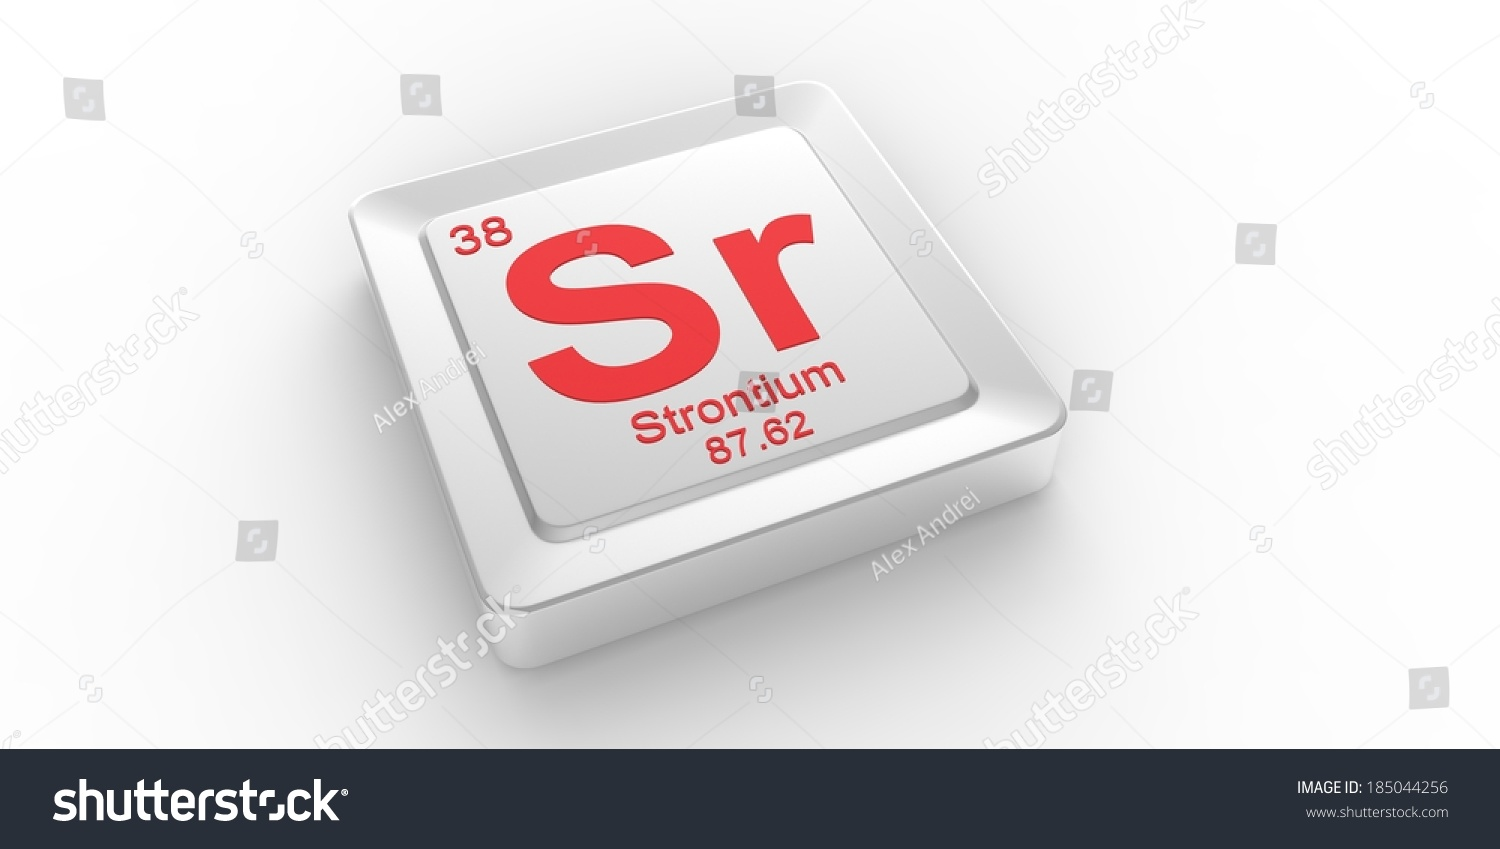 Chemical symbol of strontium image collections symbol and sign ideas sr symbol 38 material strontium chemical stock illustration sr symbol 38 material for strontium chemical element biocorpaavc